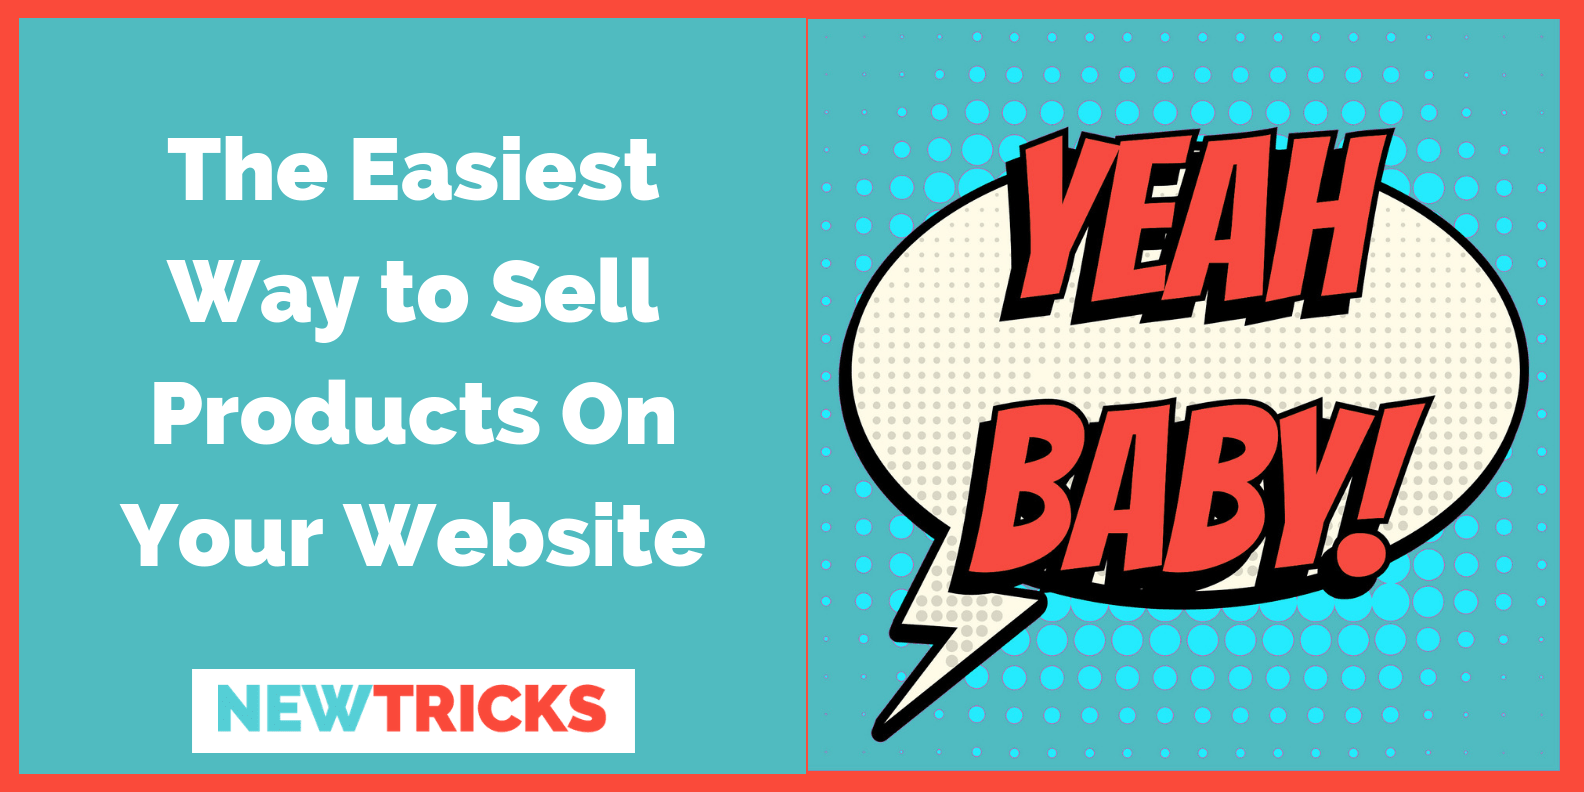 Easiest Way to Sell Products On Website